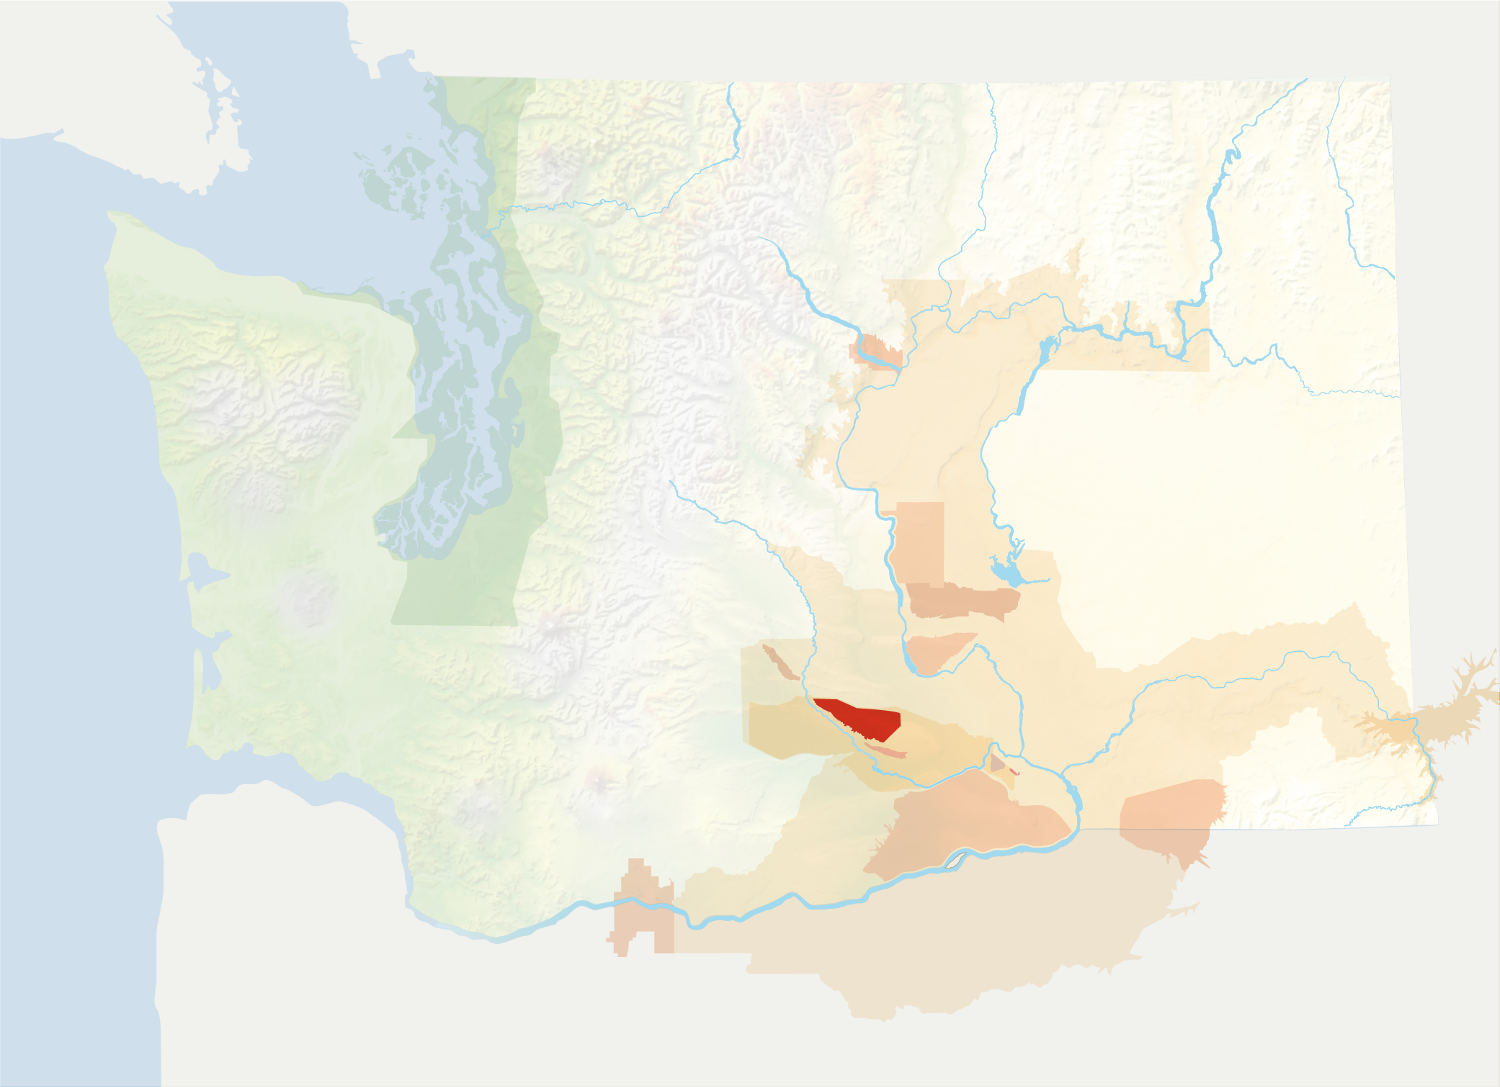 Map of Washington with the Rattlesnake Hills AVA in red, surrounded by the rest of the AVAs in muted greens and oranges.